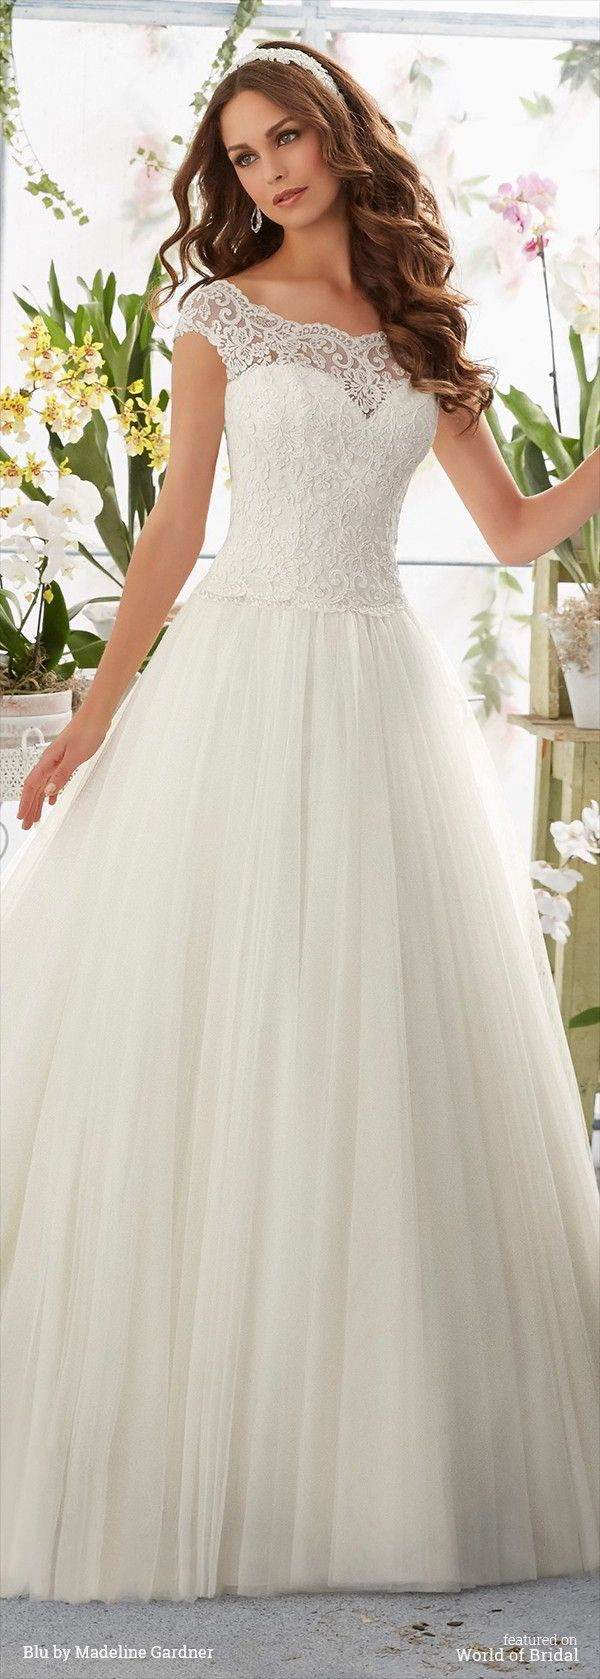 Embroidered Lace Overlays the Bateau Bodice on the Soft Net Ball Gown